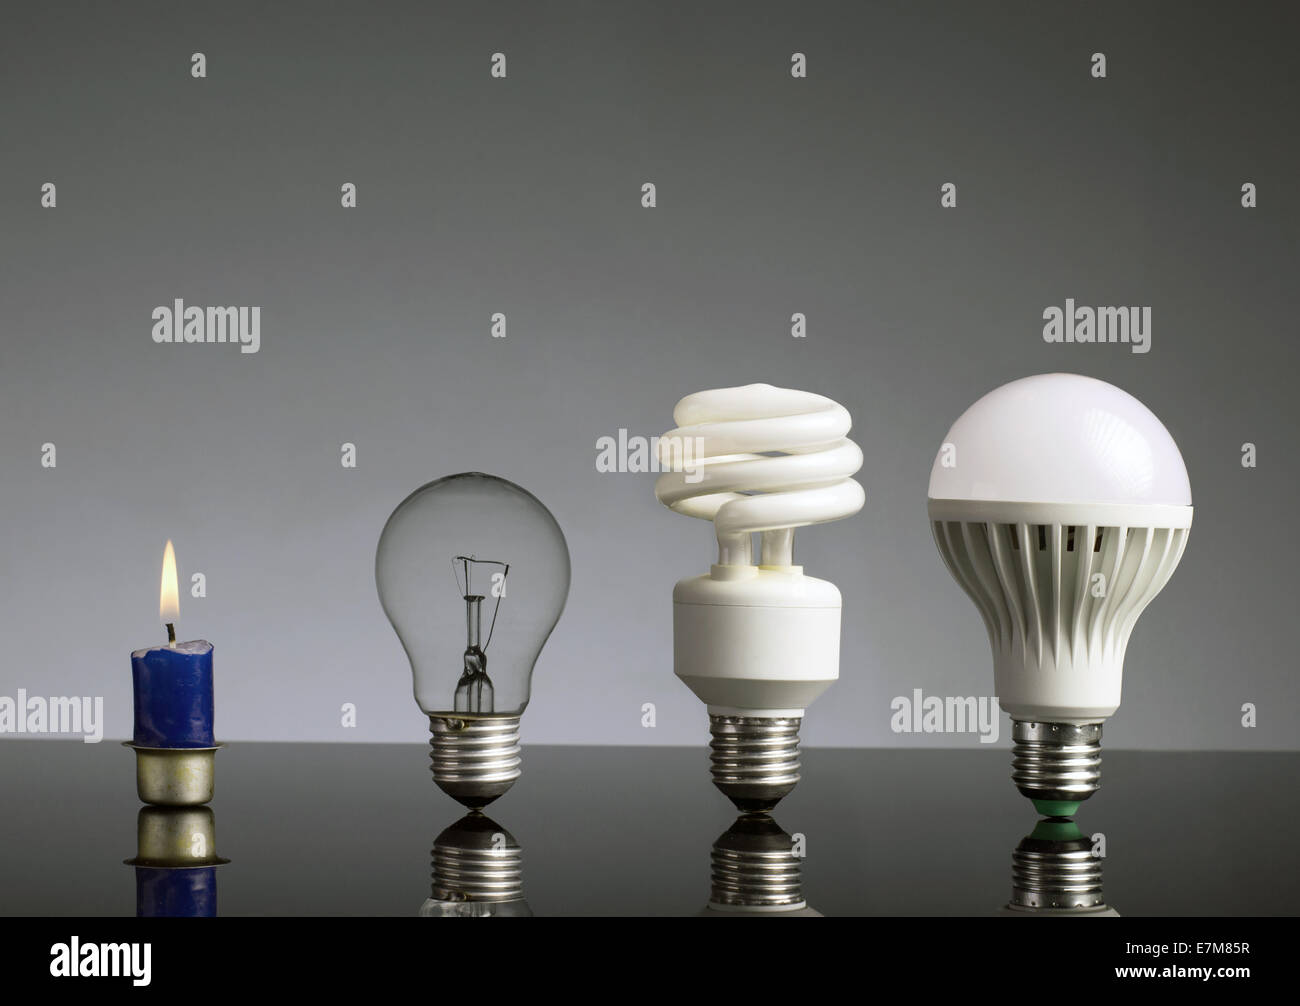 Evolution Concept, bougie, lampe au tungstène, fluorescent et ampoule ampoule LED Photo Stock